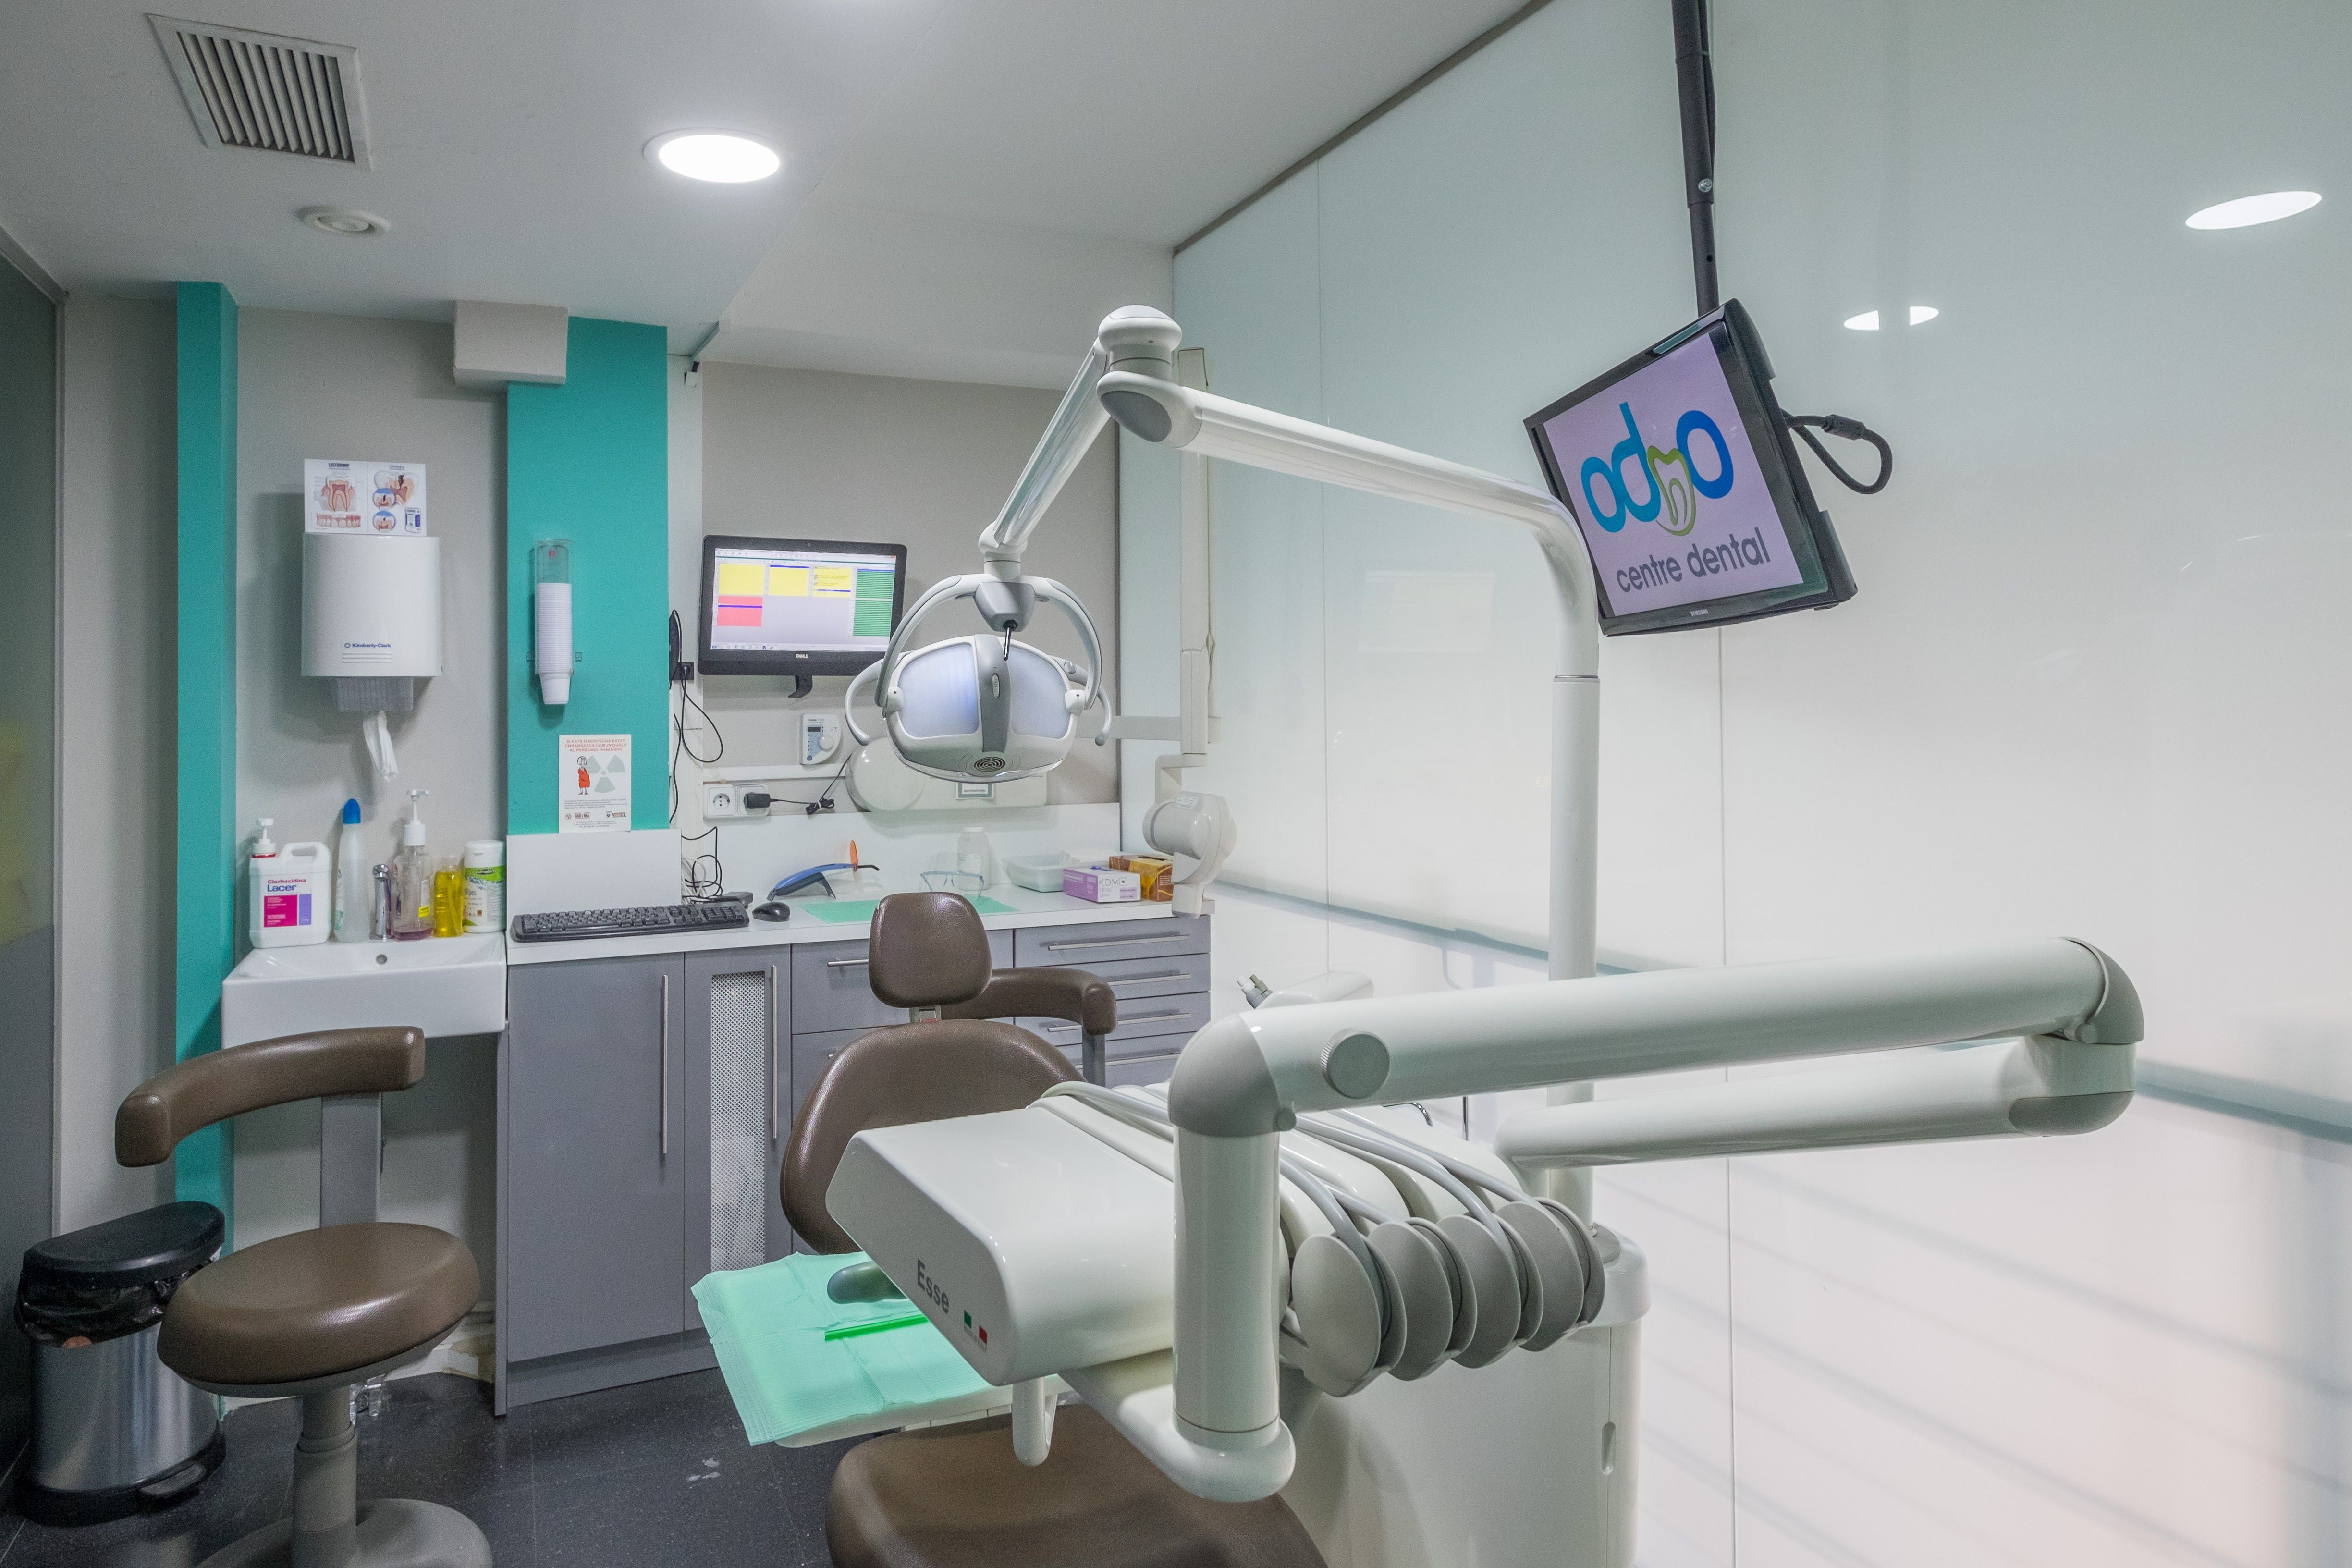 Foto 9 de Clínica dental en Barcelona | Centre Dental Oddo